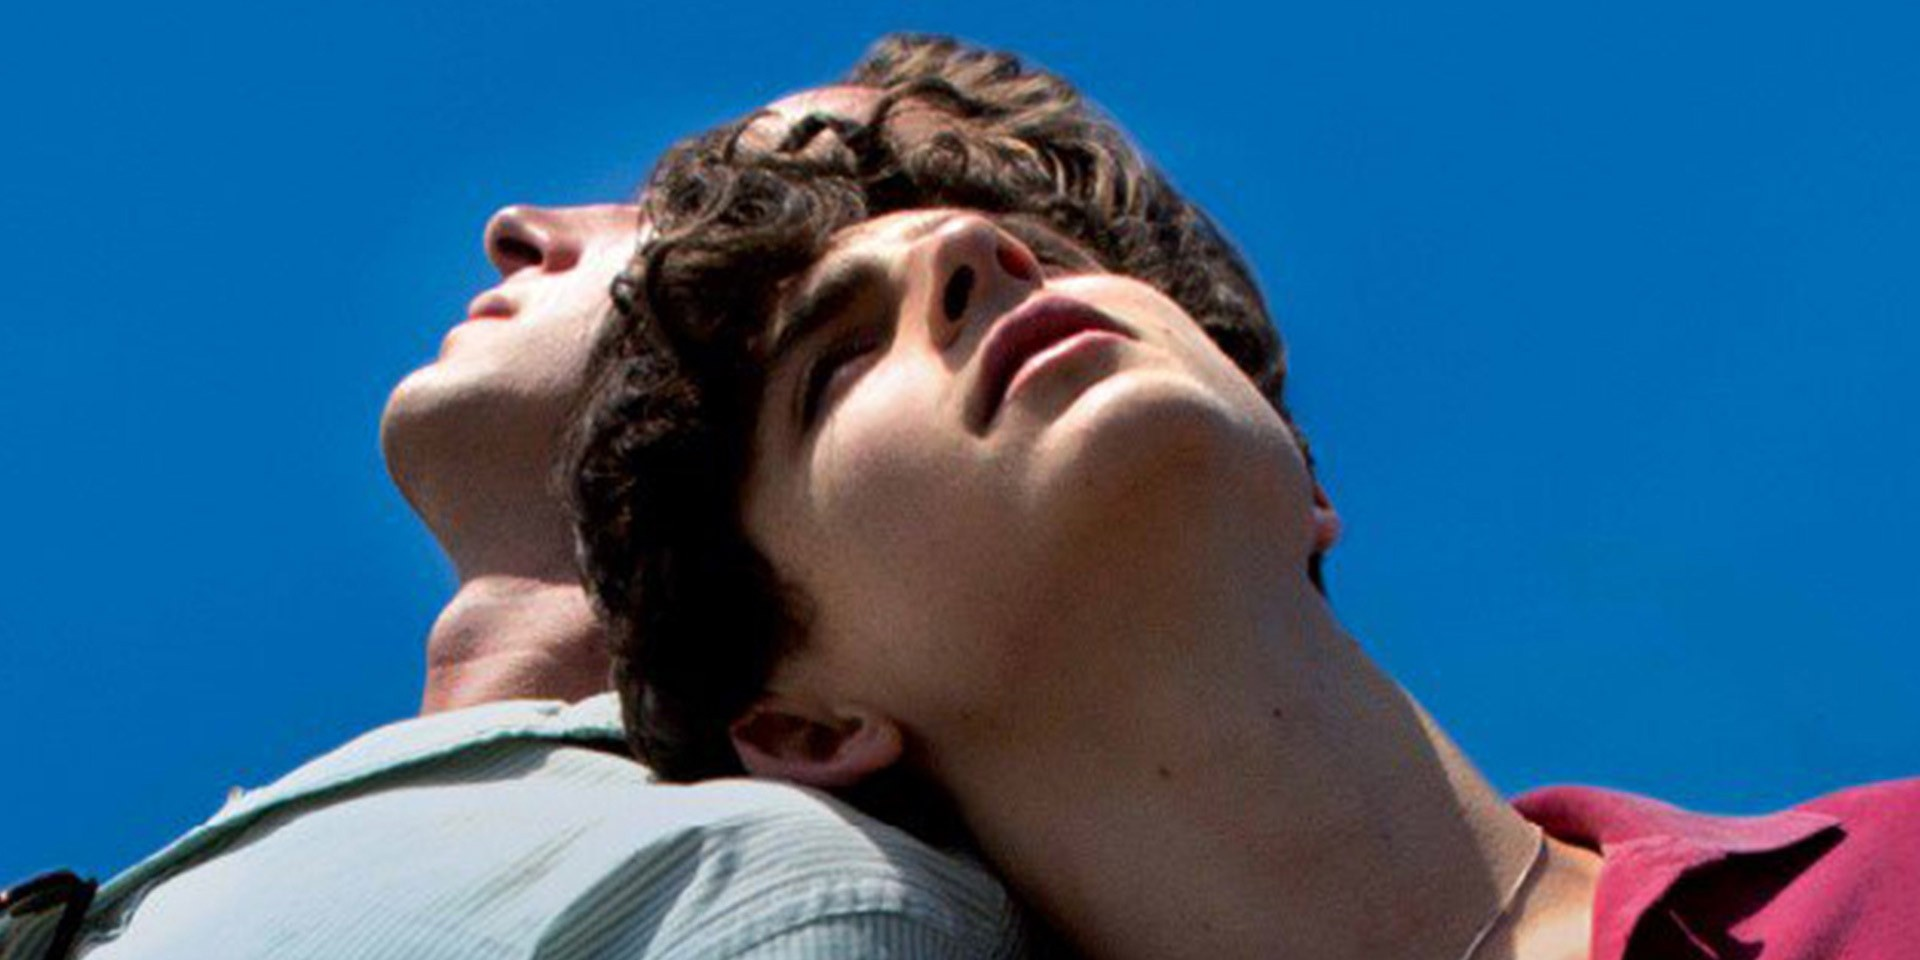 Manila Symphony Orchestra to live score Call Me By Your Name soundtrack in concert